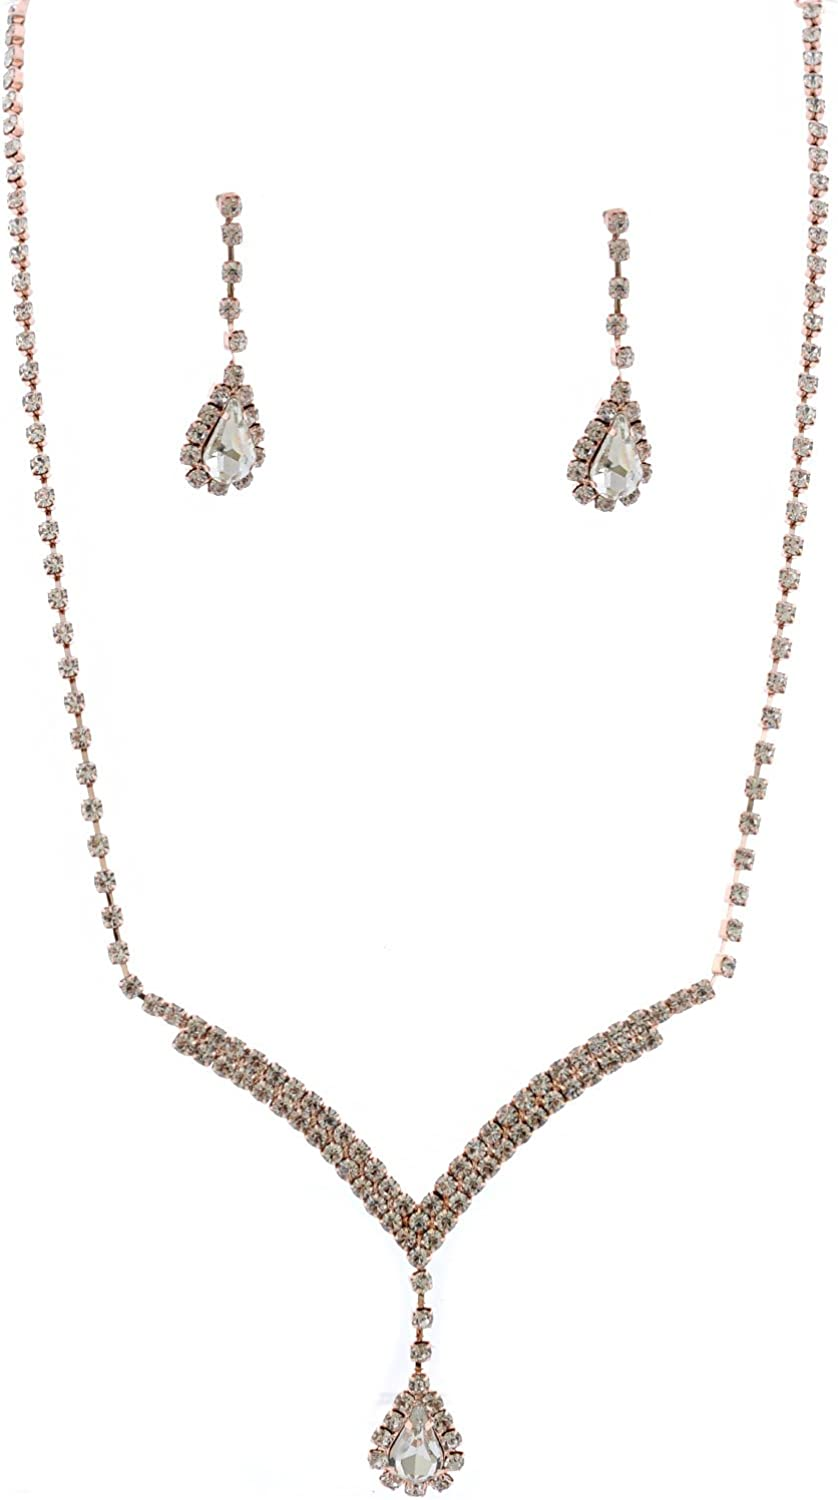 Topwhoelsalejewel Fashion Jewelry Set Rose Gold Plating Necklace Earrings Set